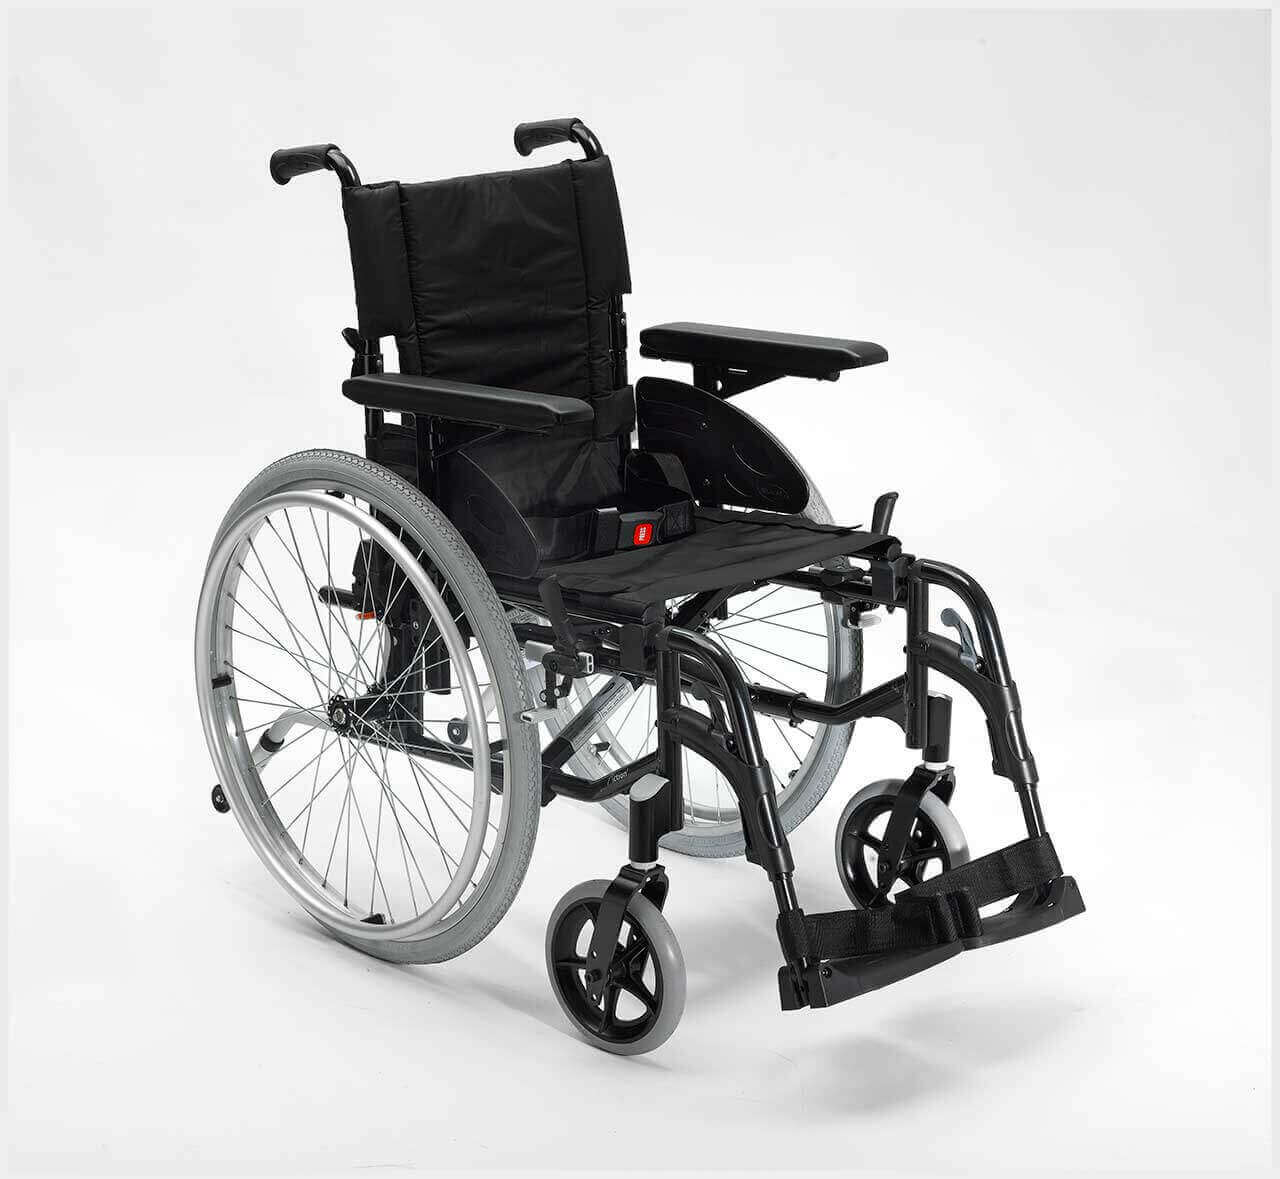 Basic Manual Wheelchair For Hire Or Sale 163 11 00 P Wk